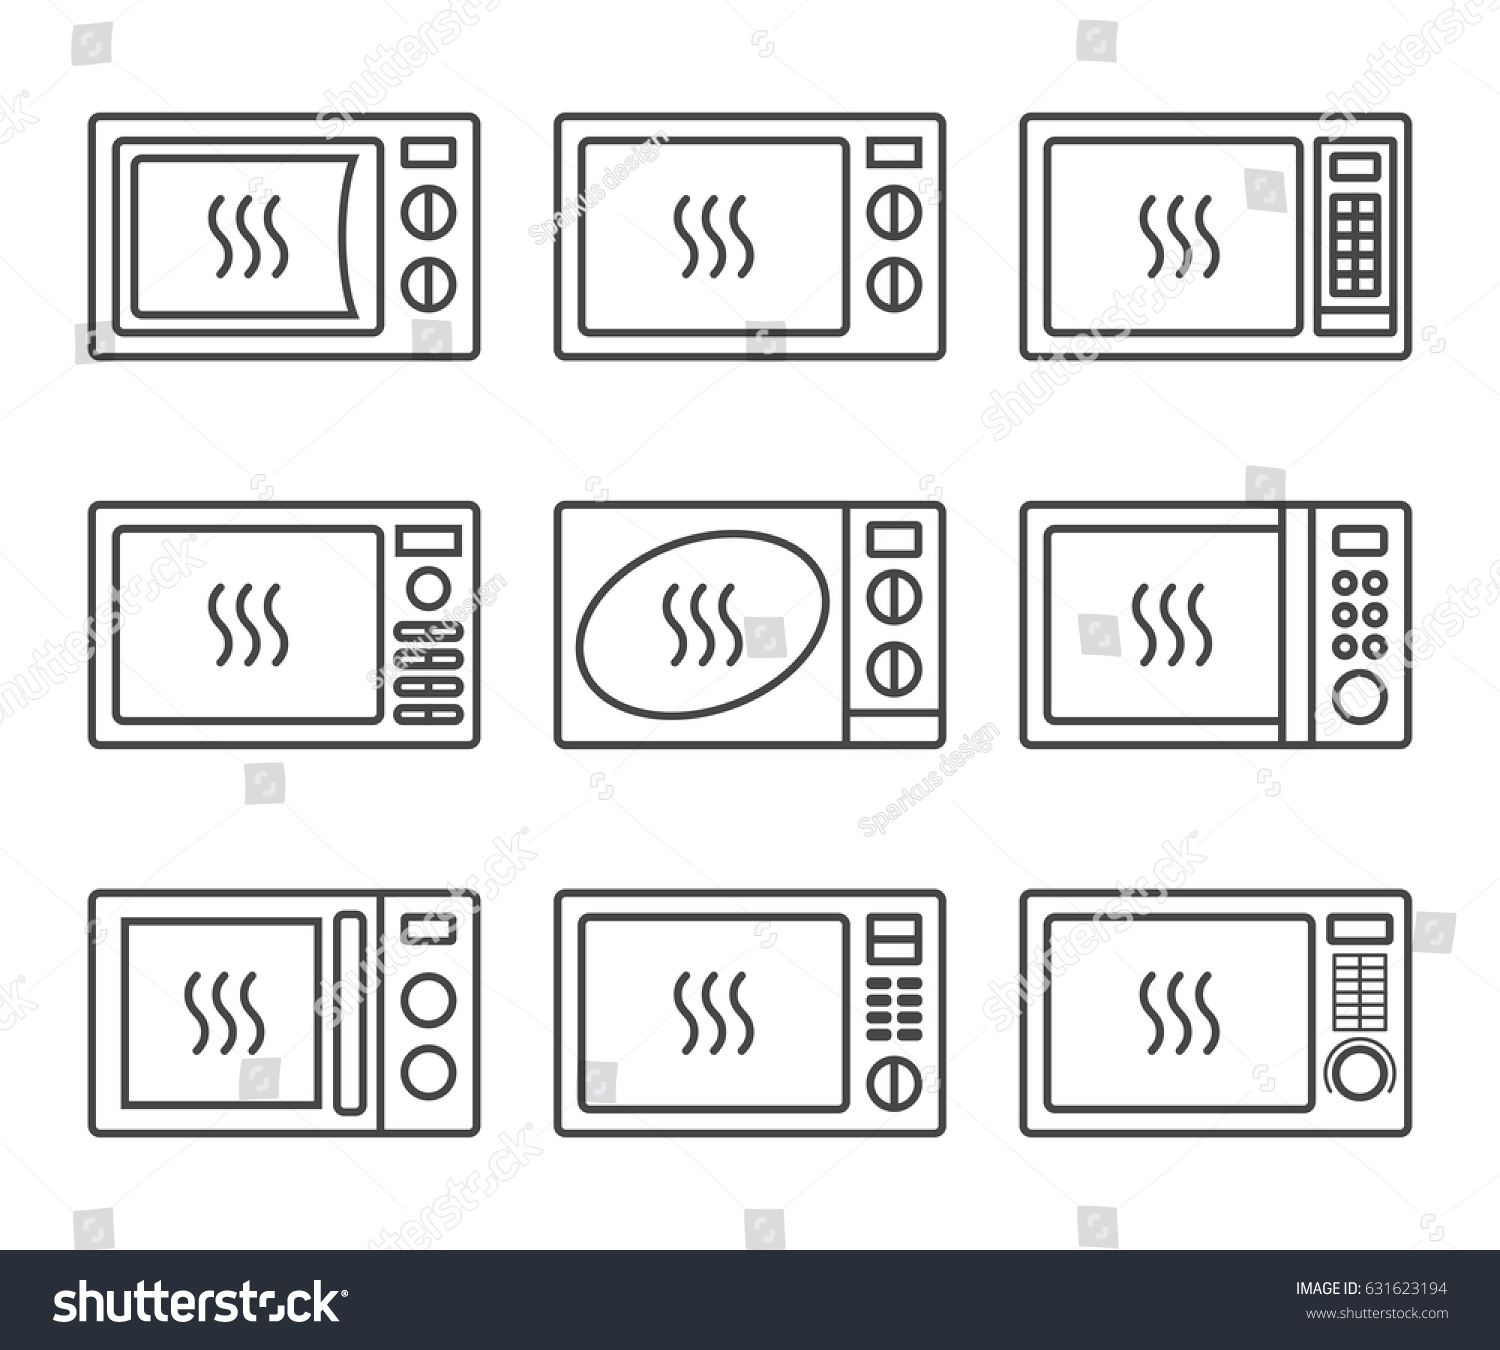 Microwave icon set different electric oven stock vector 631623194 different electric oven icons oven symbol in thin lines vector buycottarizona Image collections